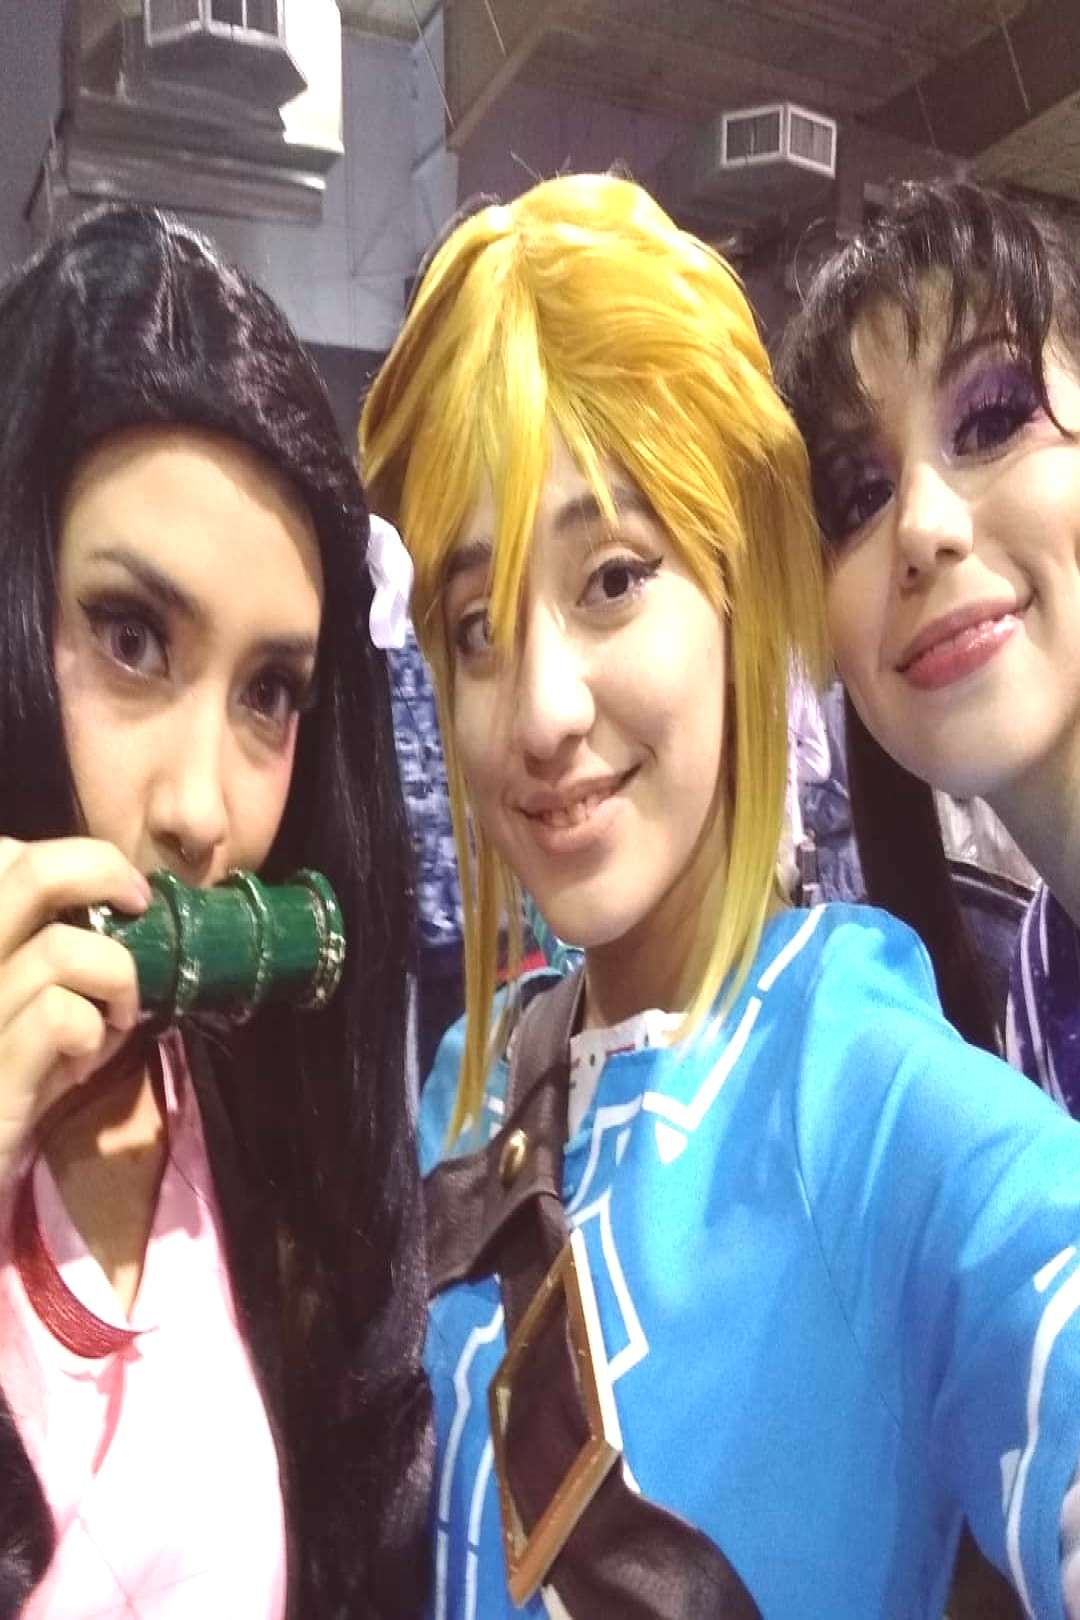 In the convention!!! #cosplay #cosmaker #animeconvention #animeco